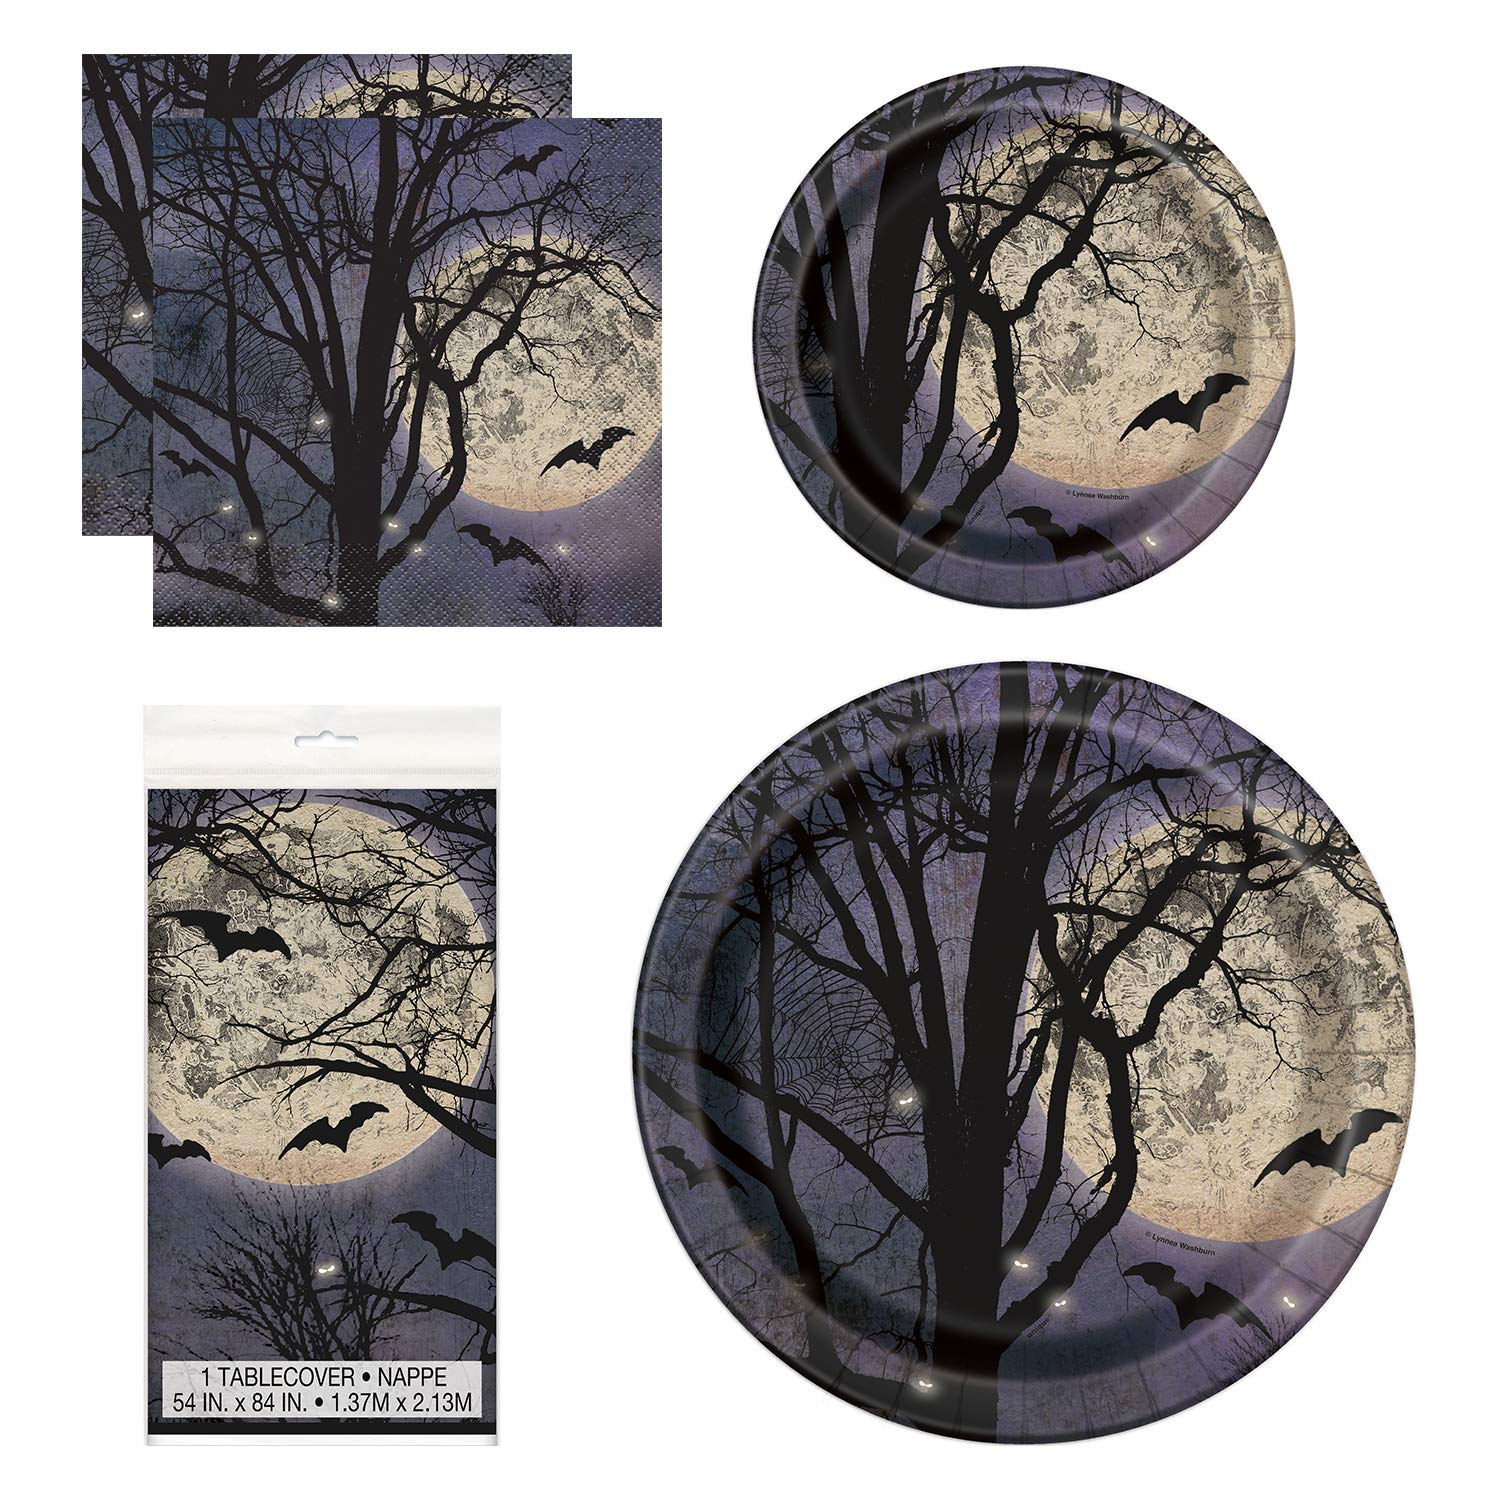 Unique Spooky Night Party Bundle | Luncheon & Beverage Napkins, Dinner & Dessert Plates, Table Cover | Great for Halloween Parties and Themed Celebrations